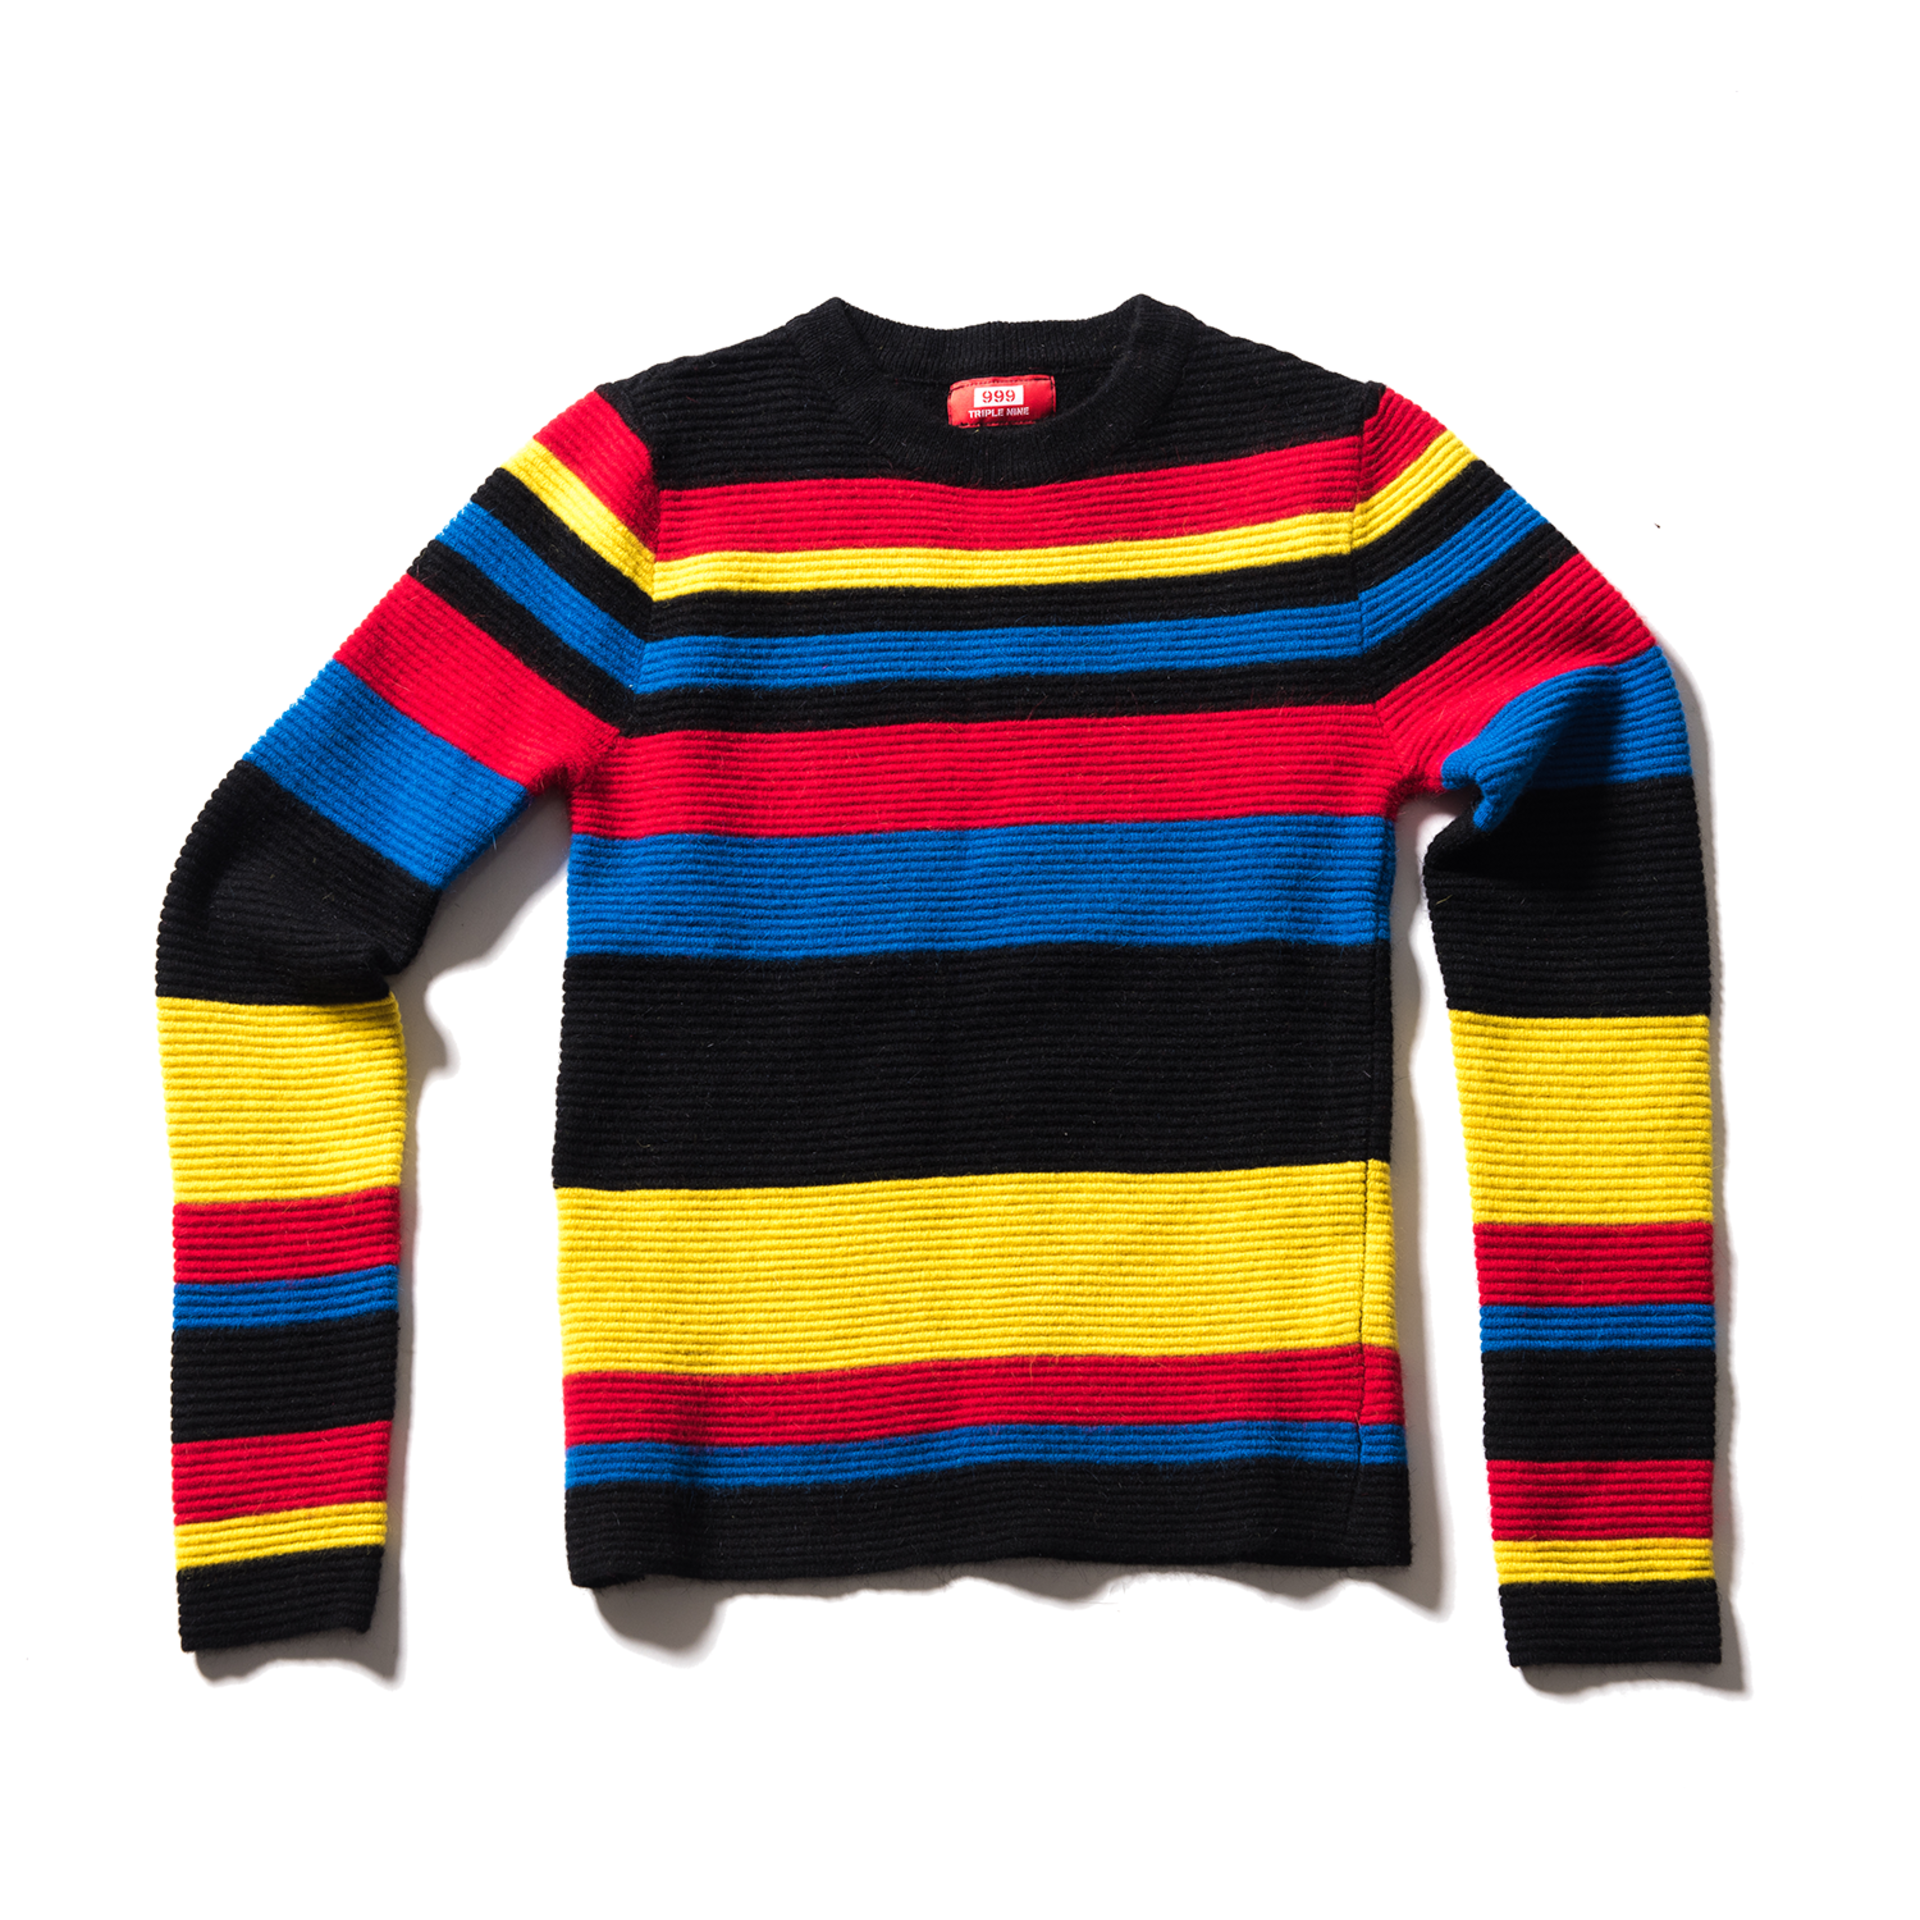 Triple Nine Rainbow knit